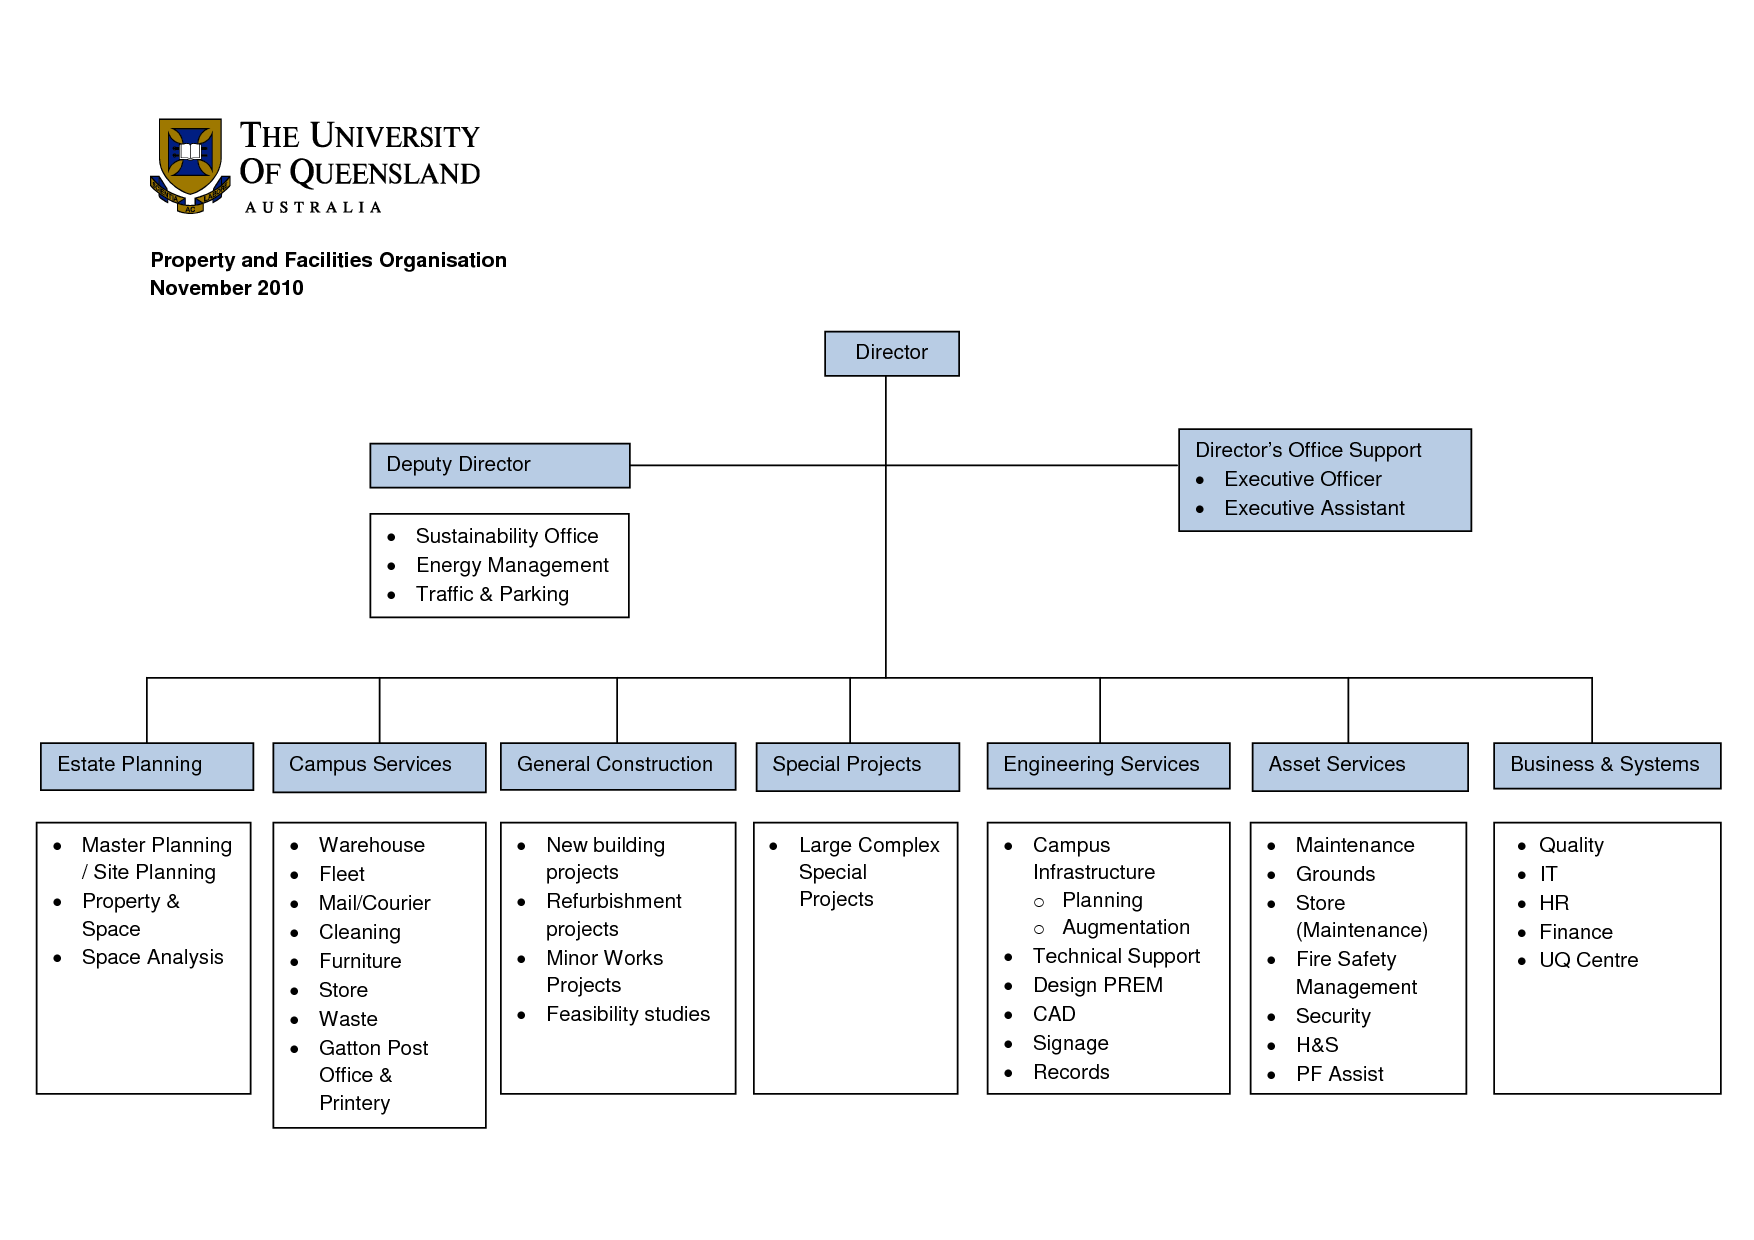 Construction organizational chart template company also example of organisation for event management team projects rh pinterest